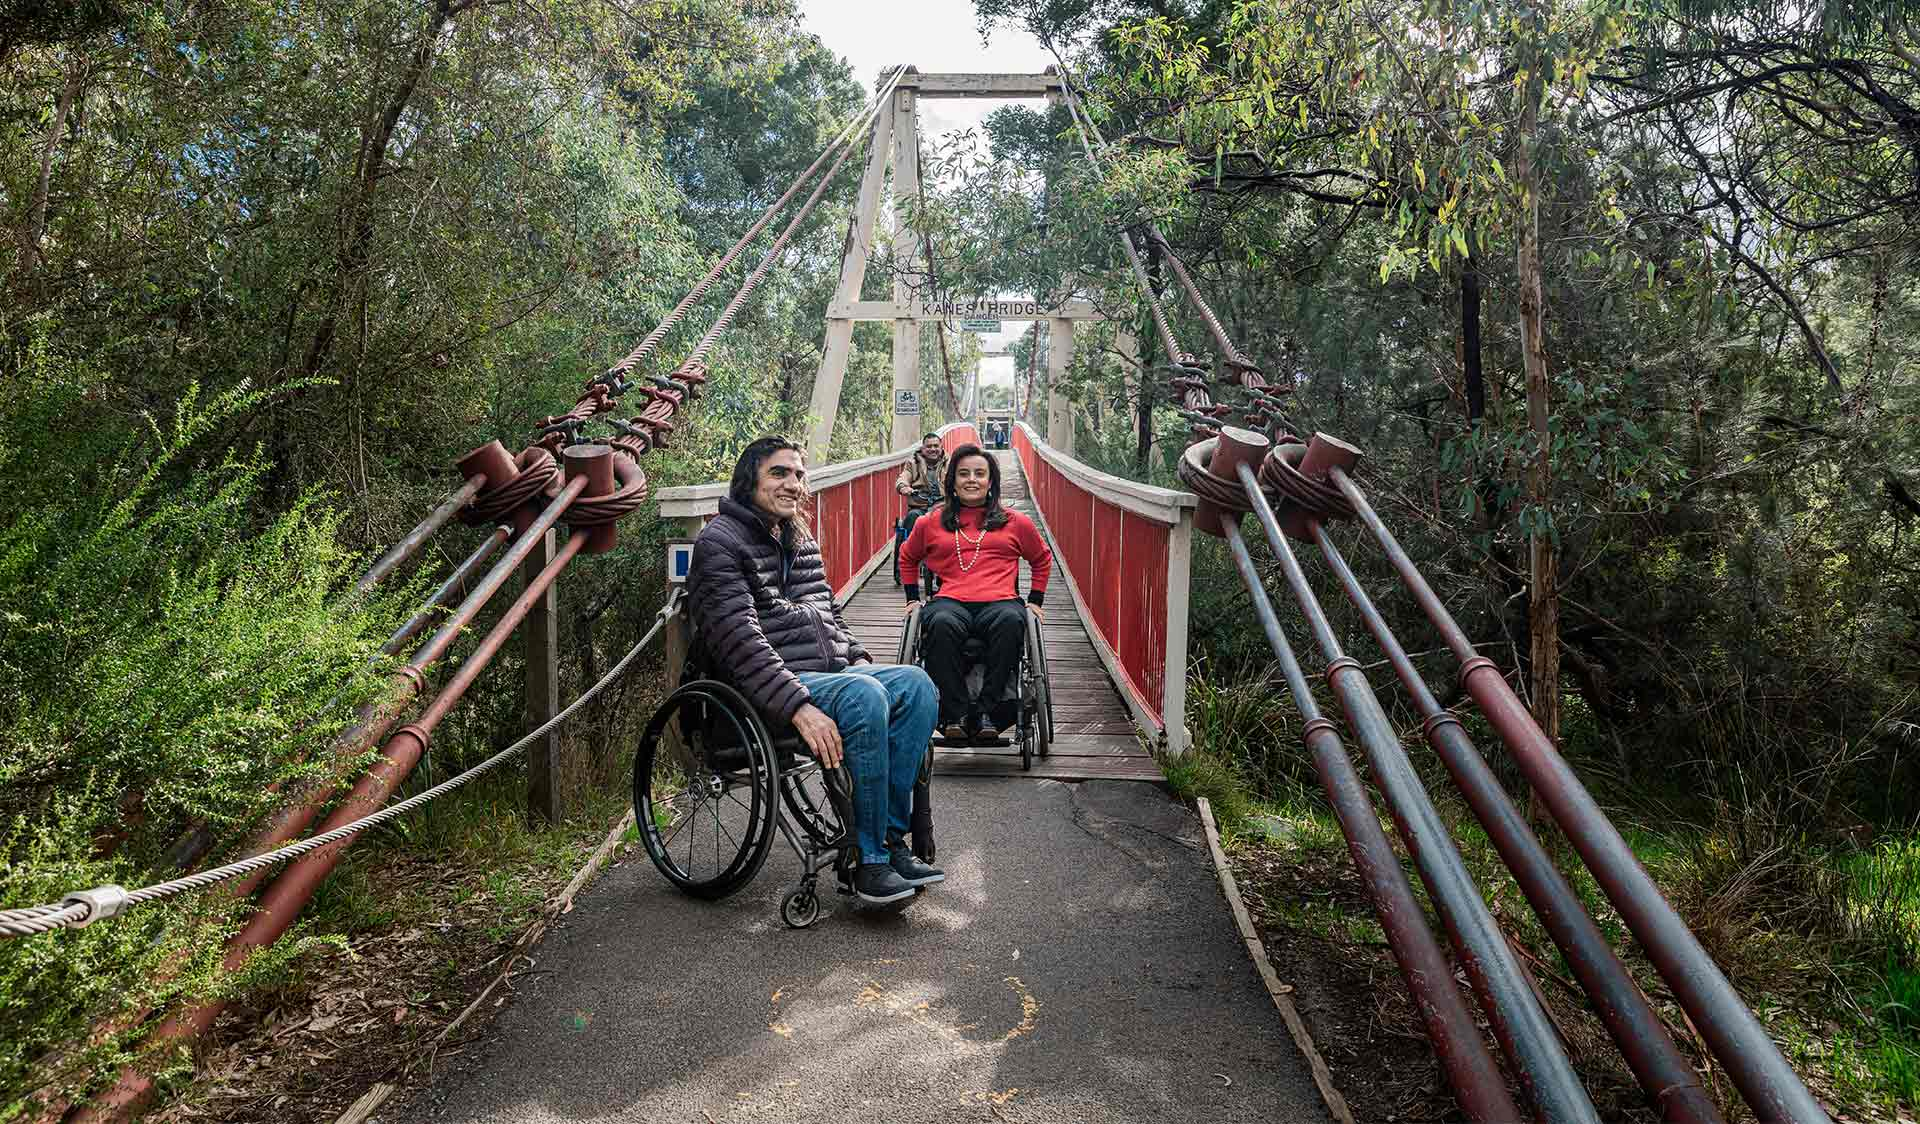 Man in wheelchair waits as his two friends cross accessible Kane's Bridge in Yarra Bend Park.